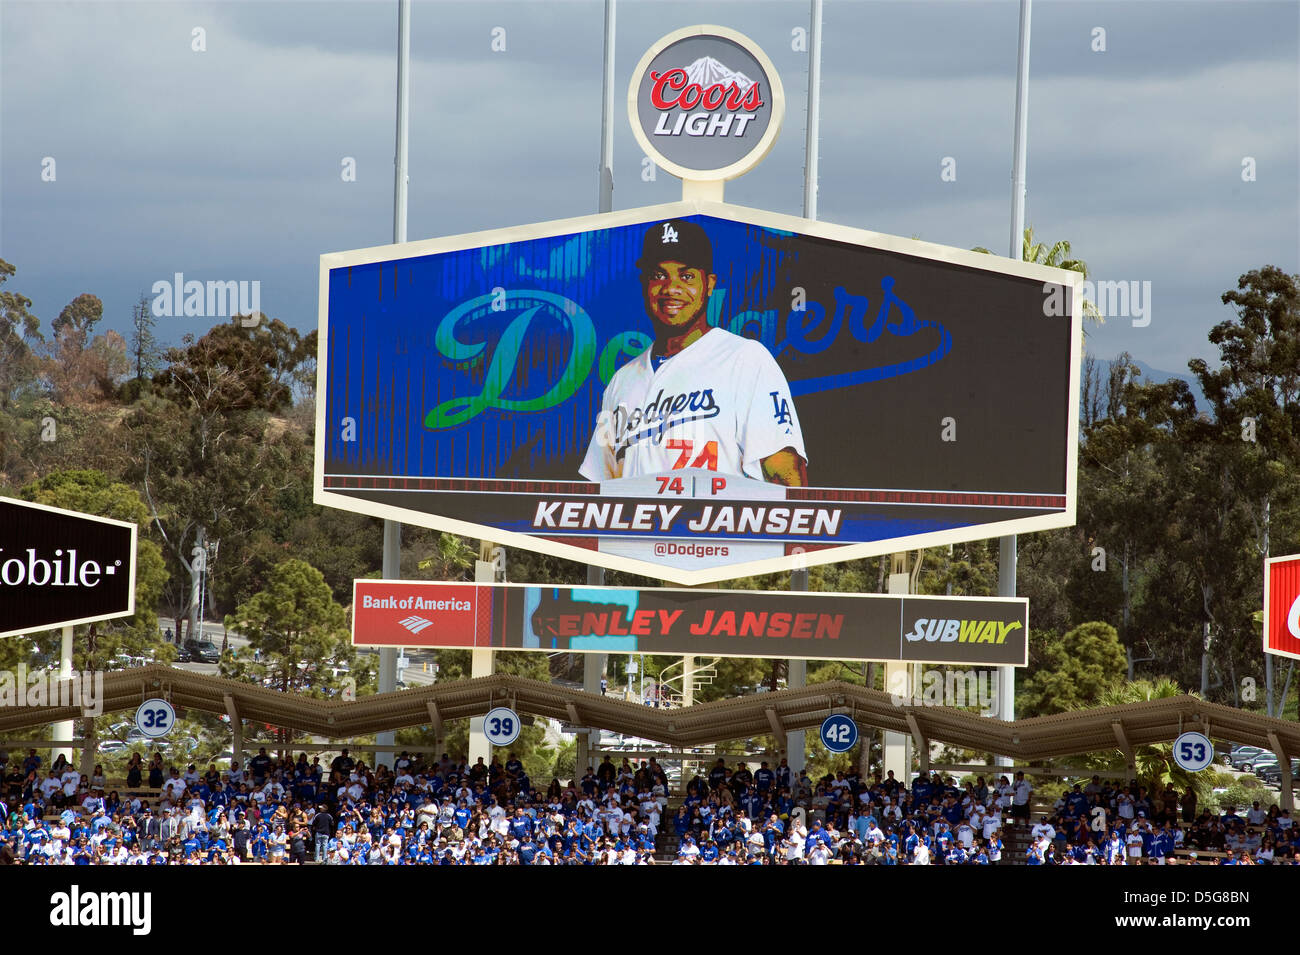 the dodgers scoreboard at dodger stadium in los angeles